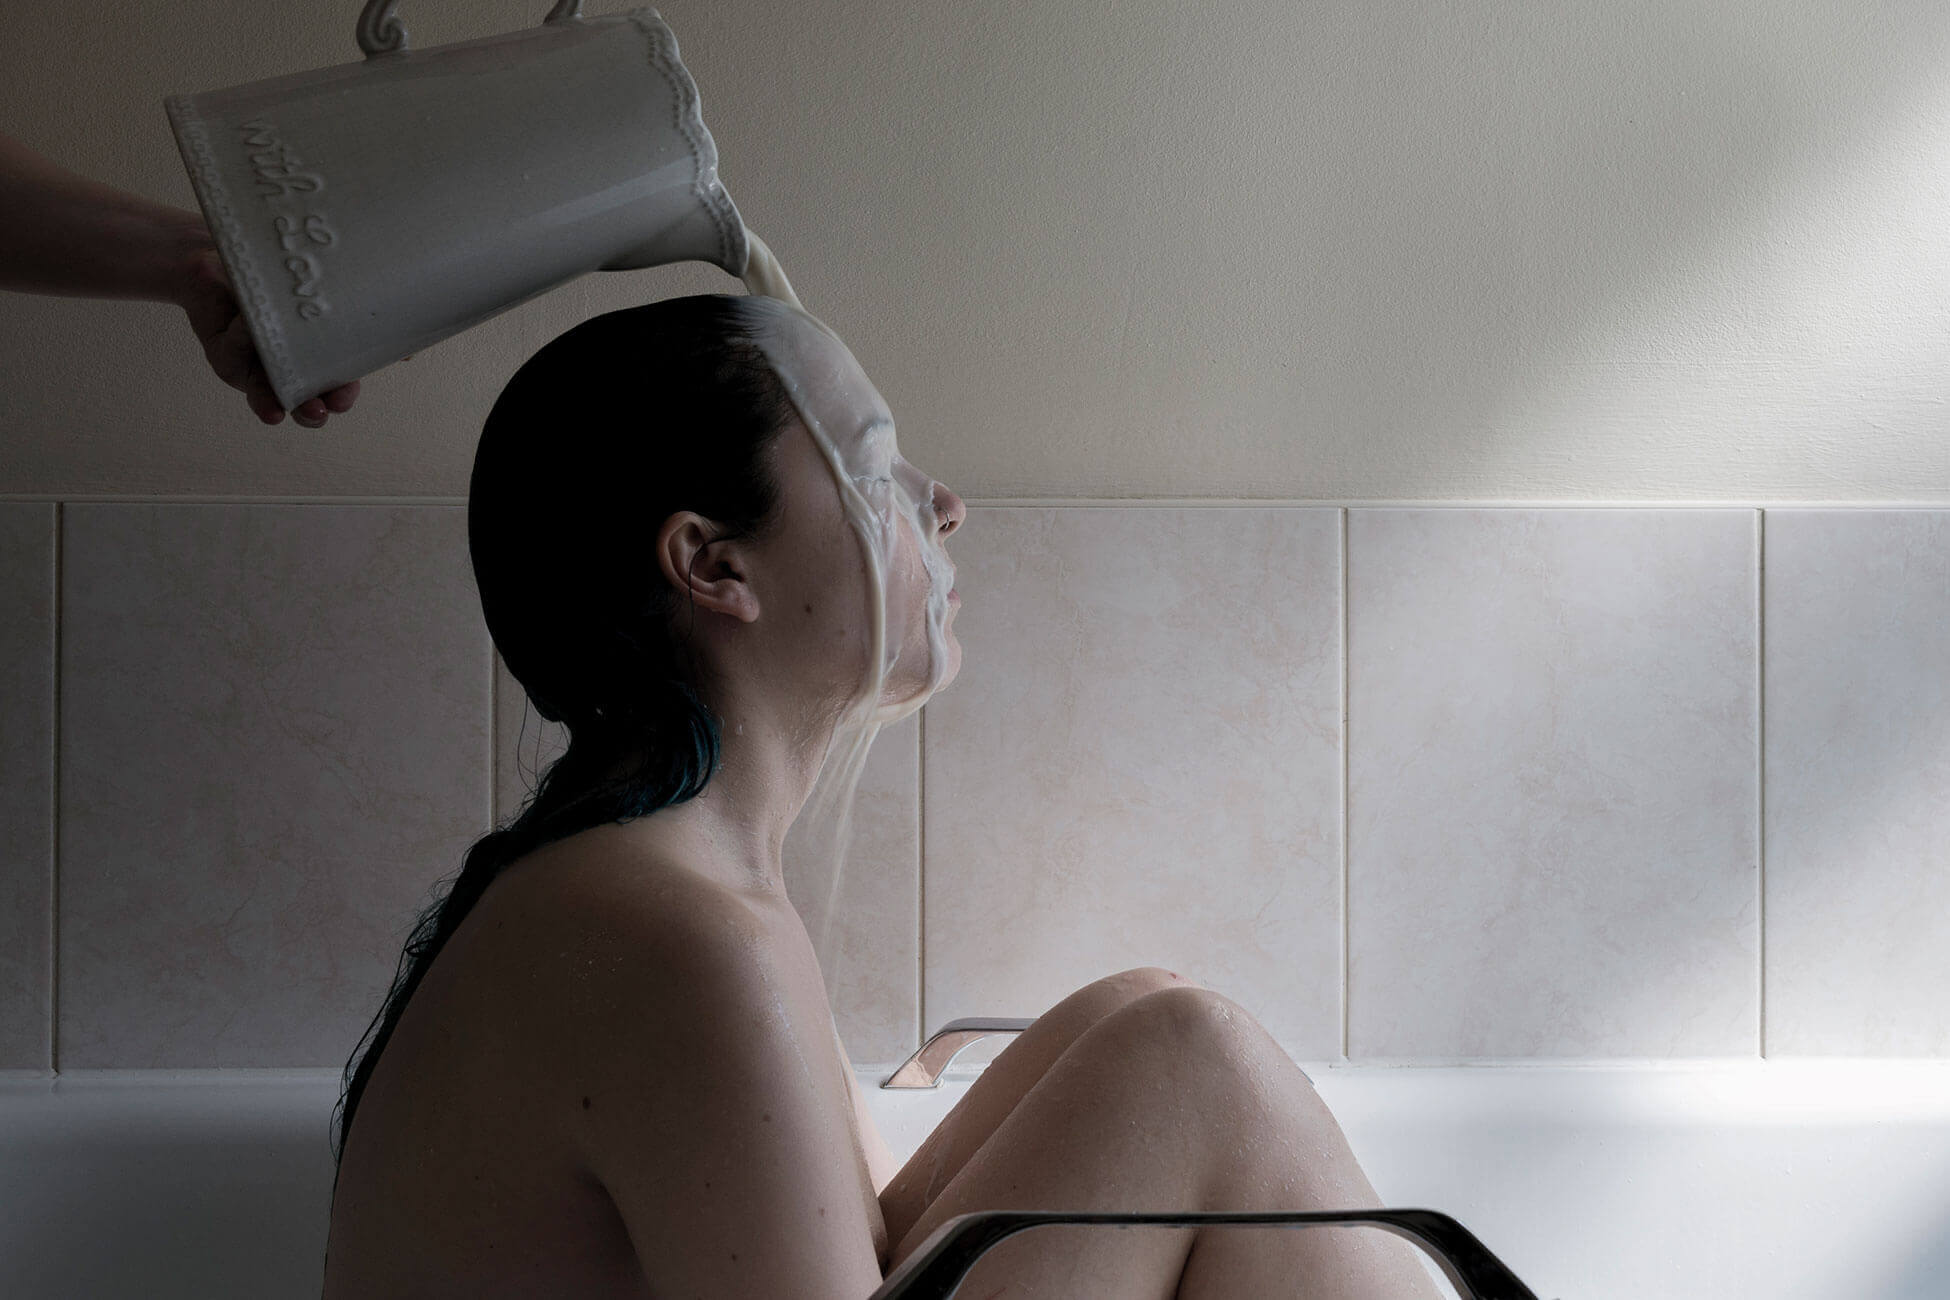 A woman in a bath having milk poured over her